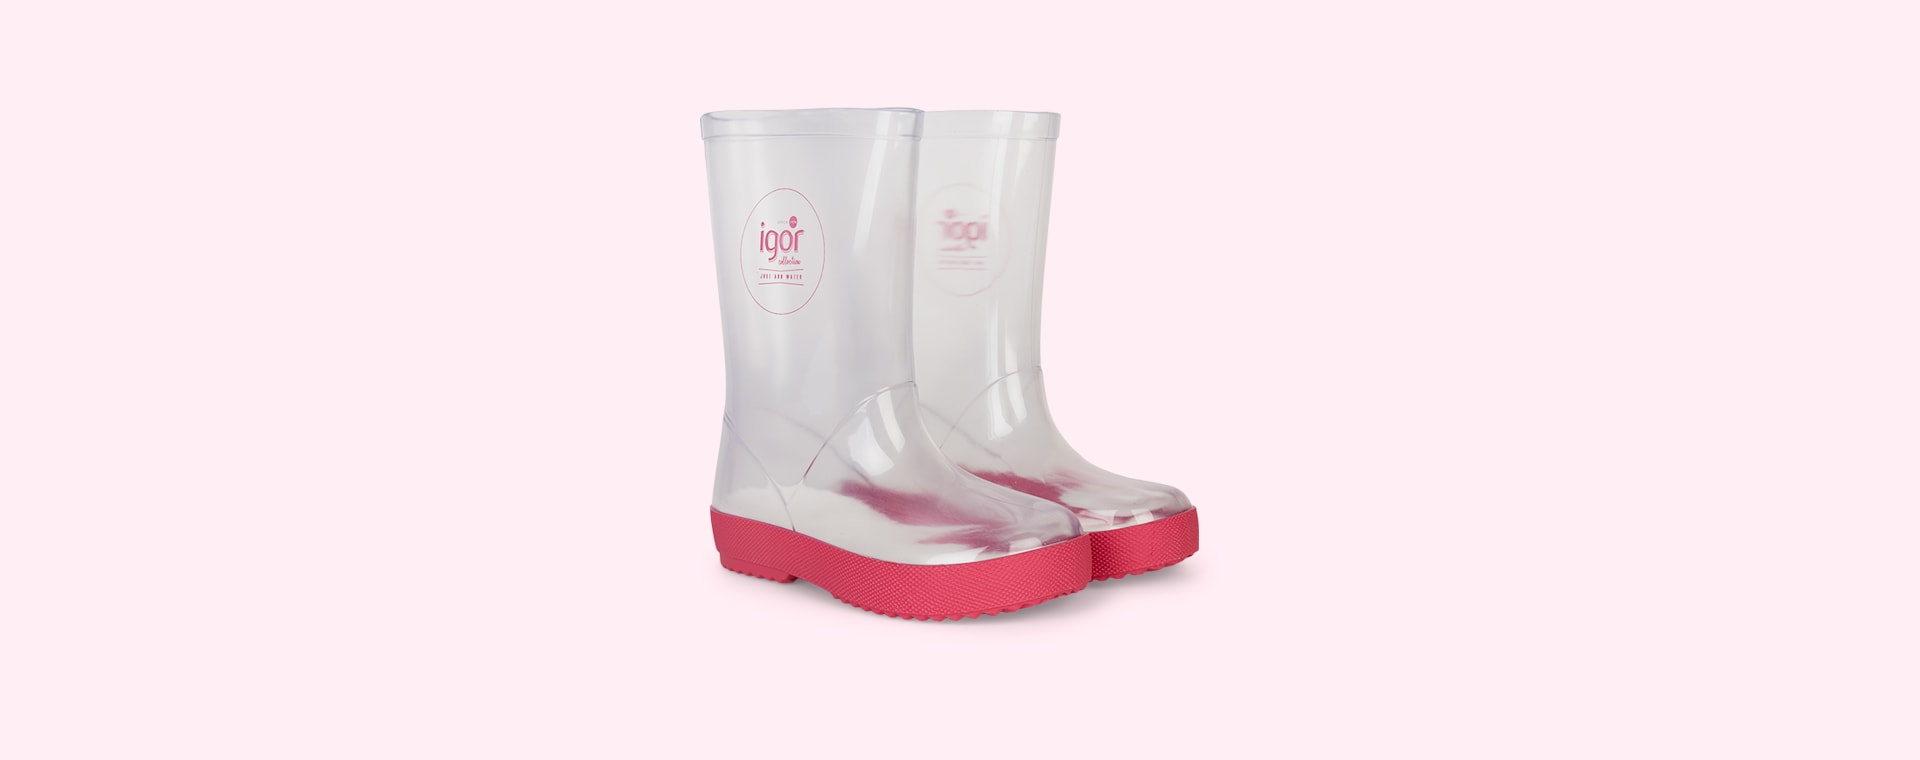 Fuschia igor Splash Crystal Transparent Wellies & Socks